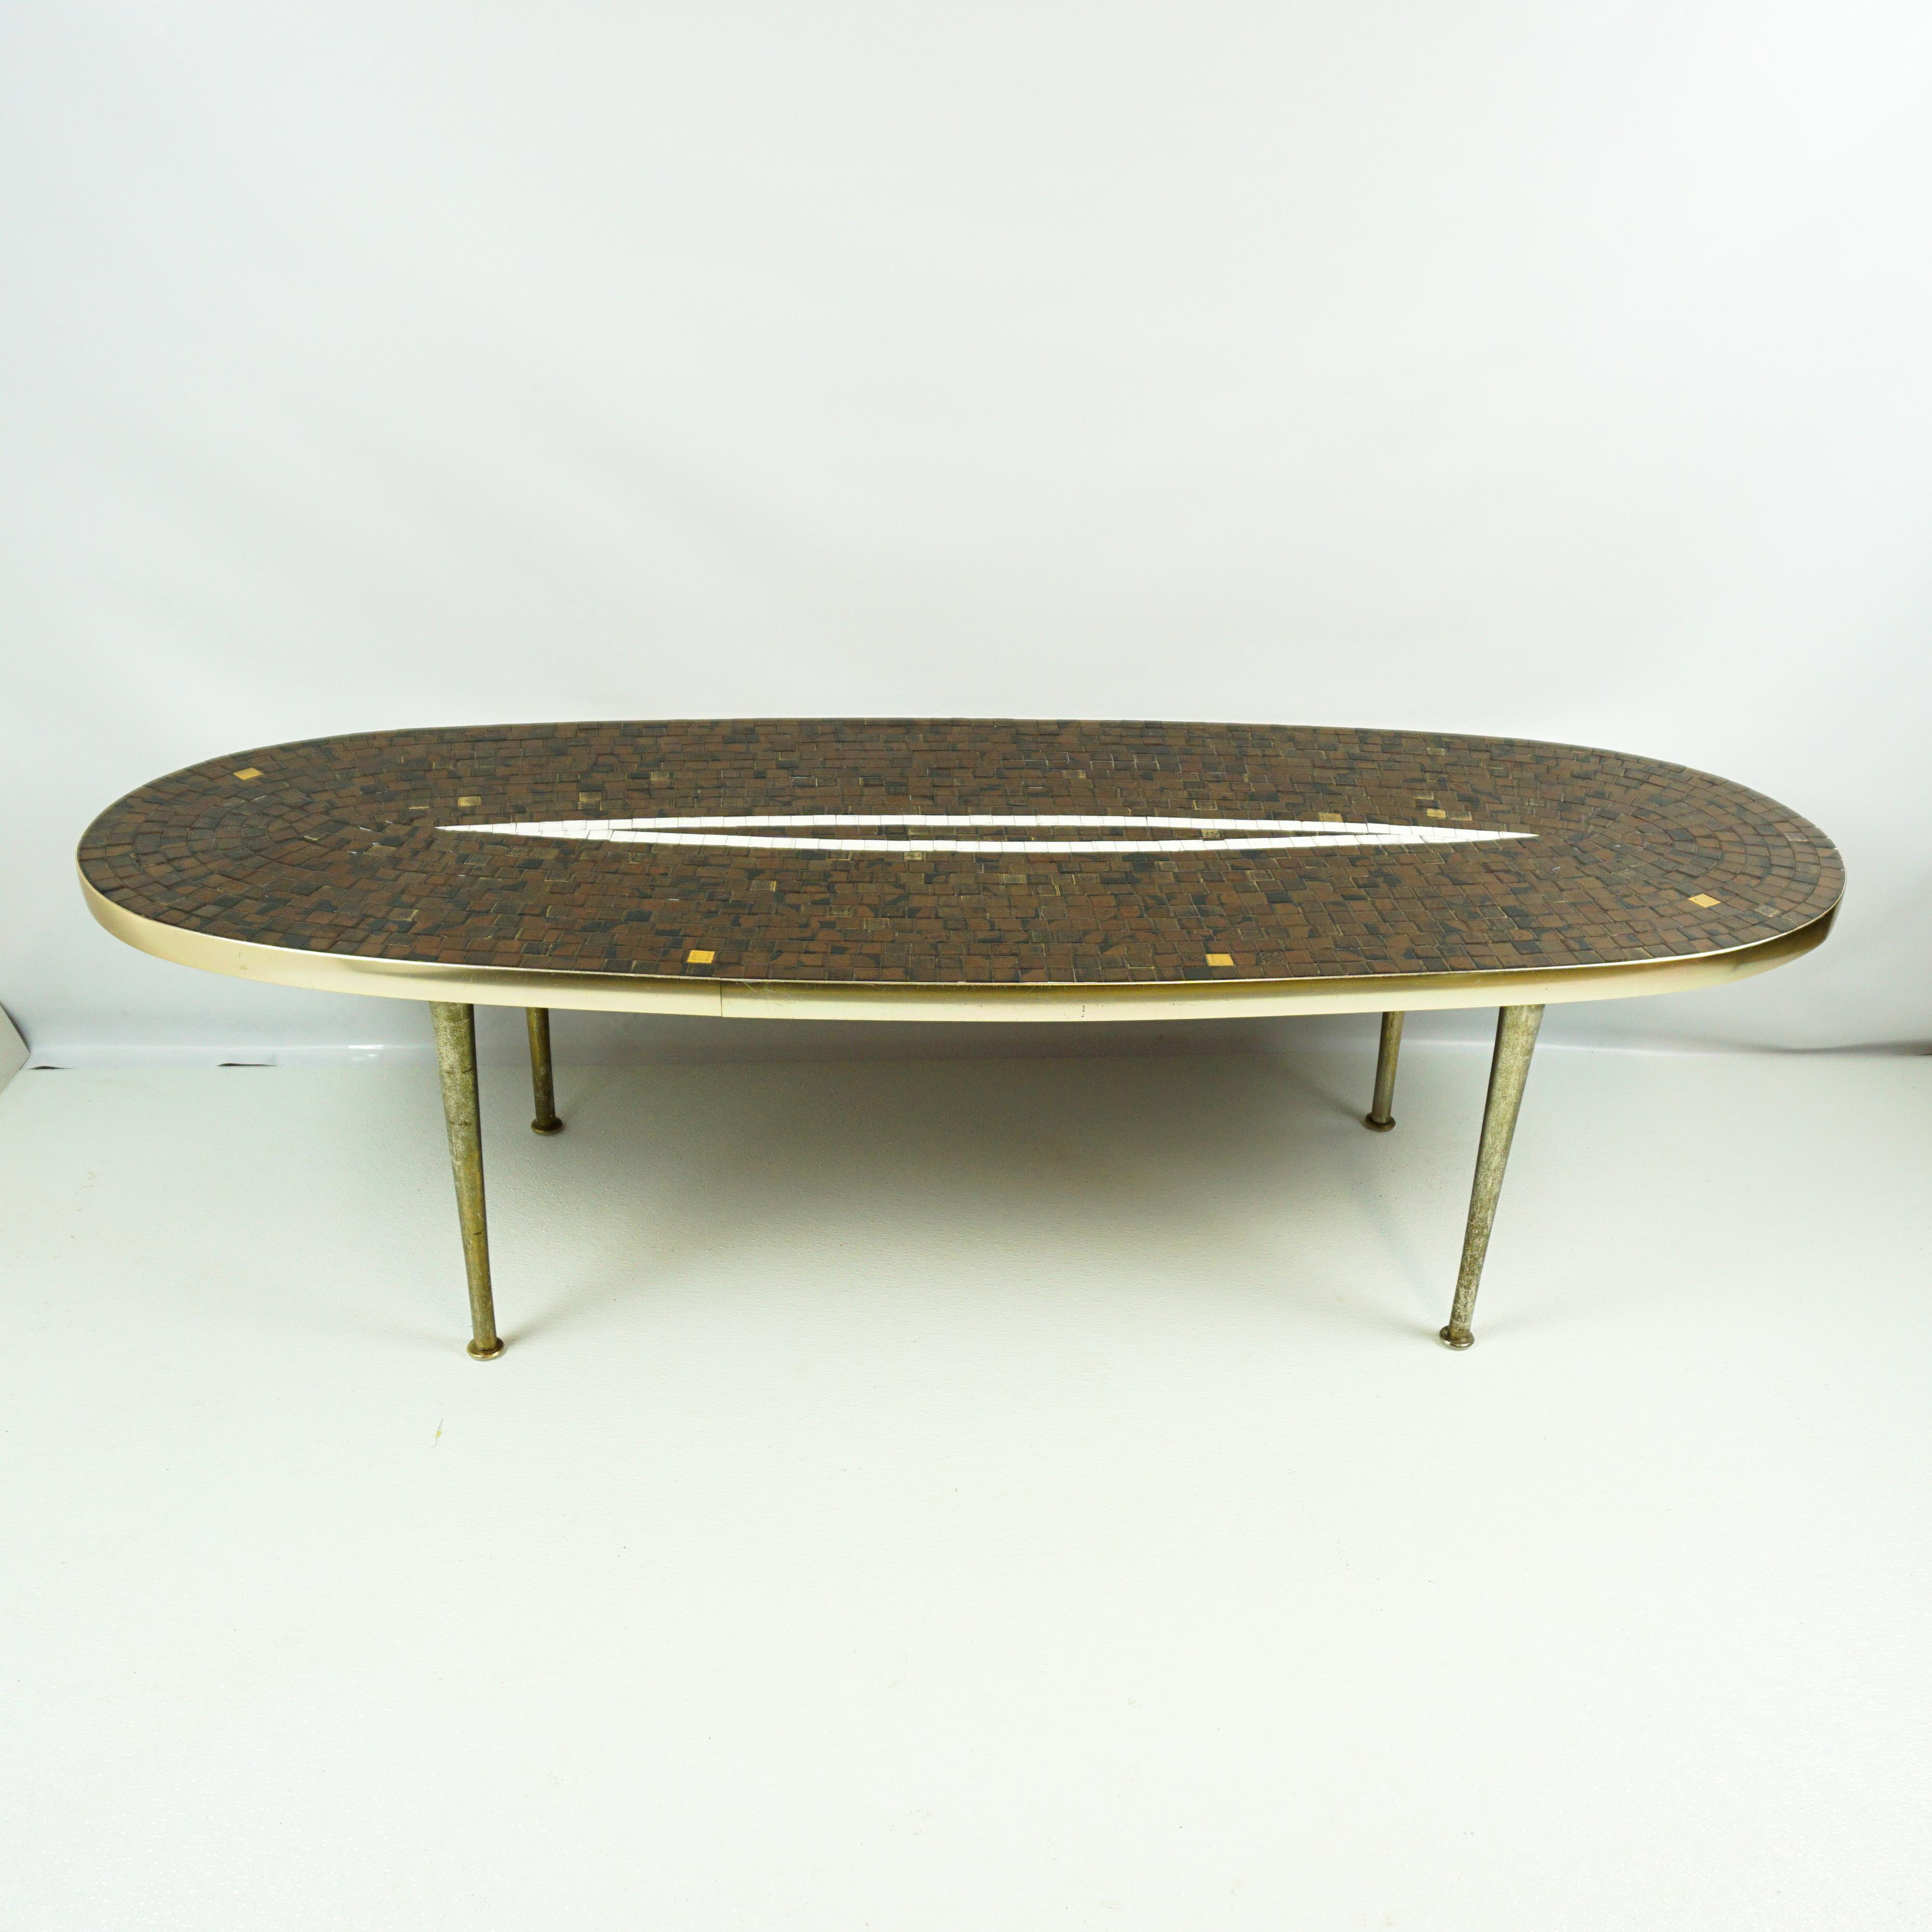 Superbe Unusual Mosaic Tile And Metal Oval Mid Centuy Coffee Table, Surfboard Style.  Done In